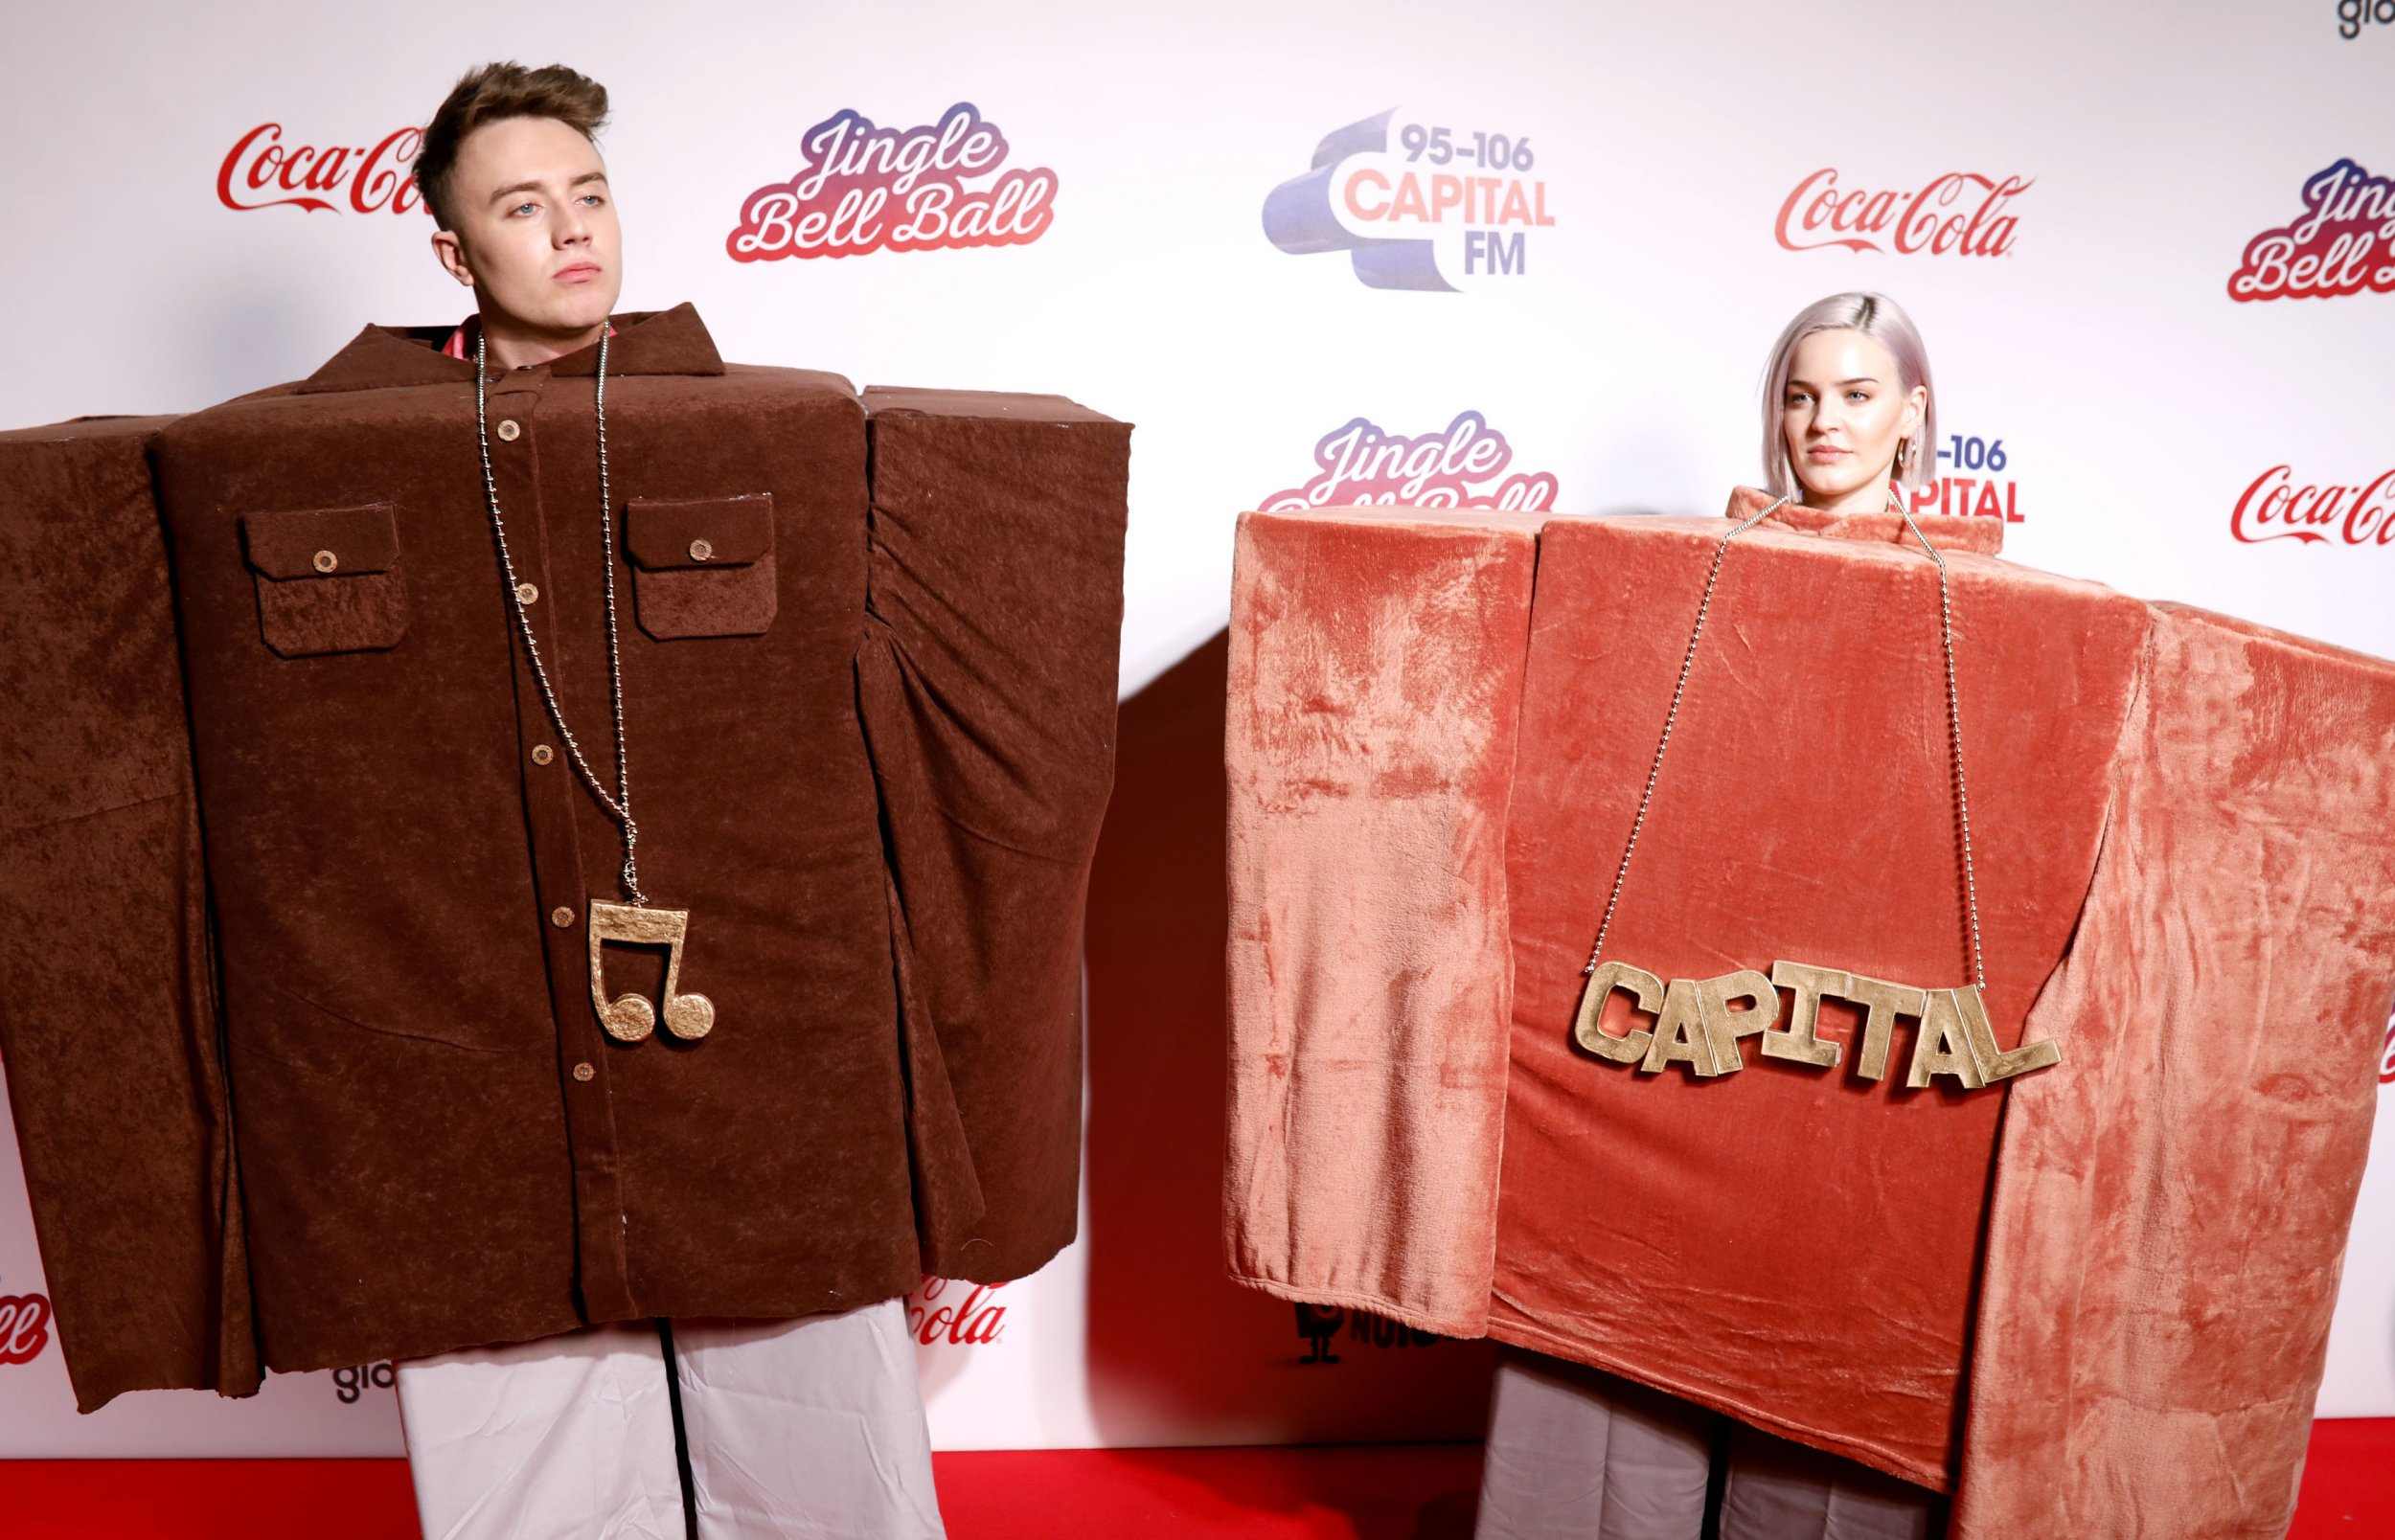 Capital FM Presenter Roman Kemp and Anne-Marie during the media run on day one of Capital's Jingle Bell Ball with Coca-Cola at London's O2 Arena. PRESS ASSOCIATION Photo. Night one of the event saw performances from Liam Payne, Rita Ora, Ellie Goulding and David Guetta. Picture date: Saturday December 8, 2018. See PA story SHOWBIZ Jingle Bell. Photo credit should read: David Parry/PA Wire